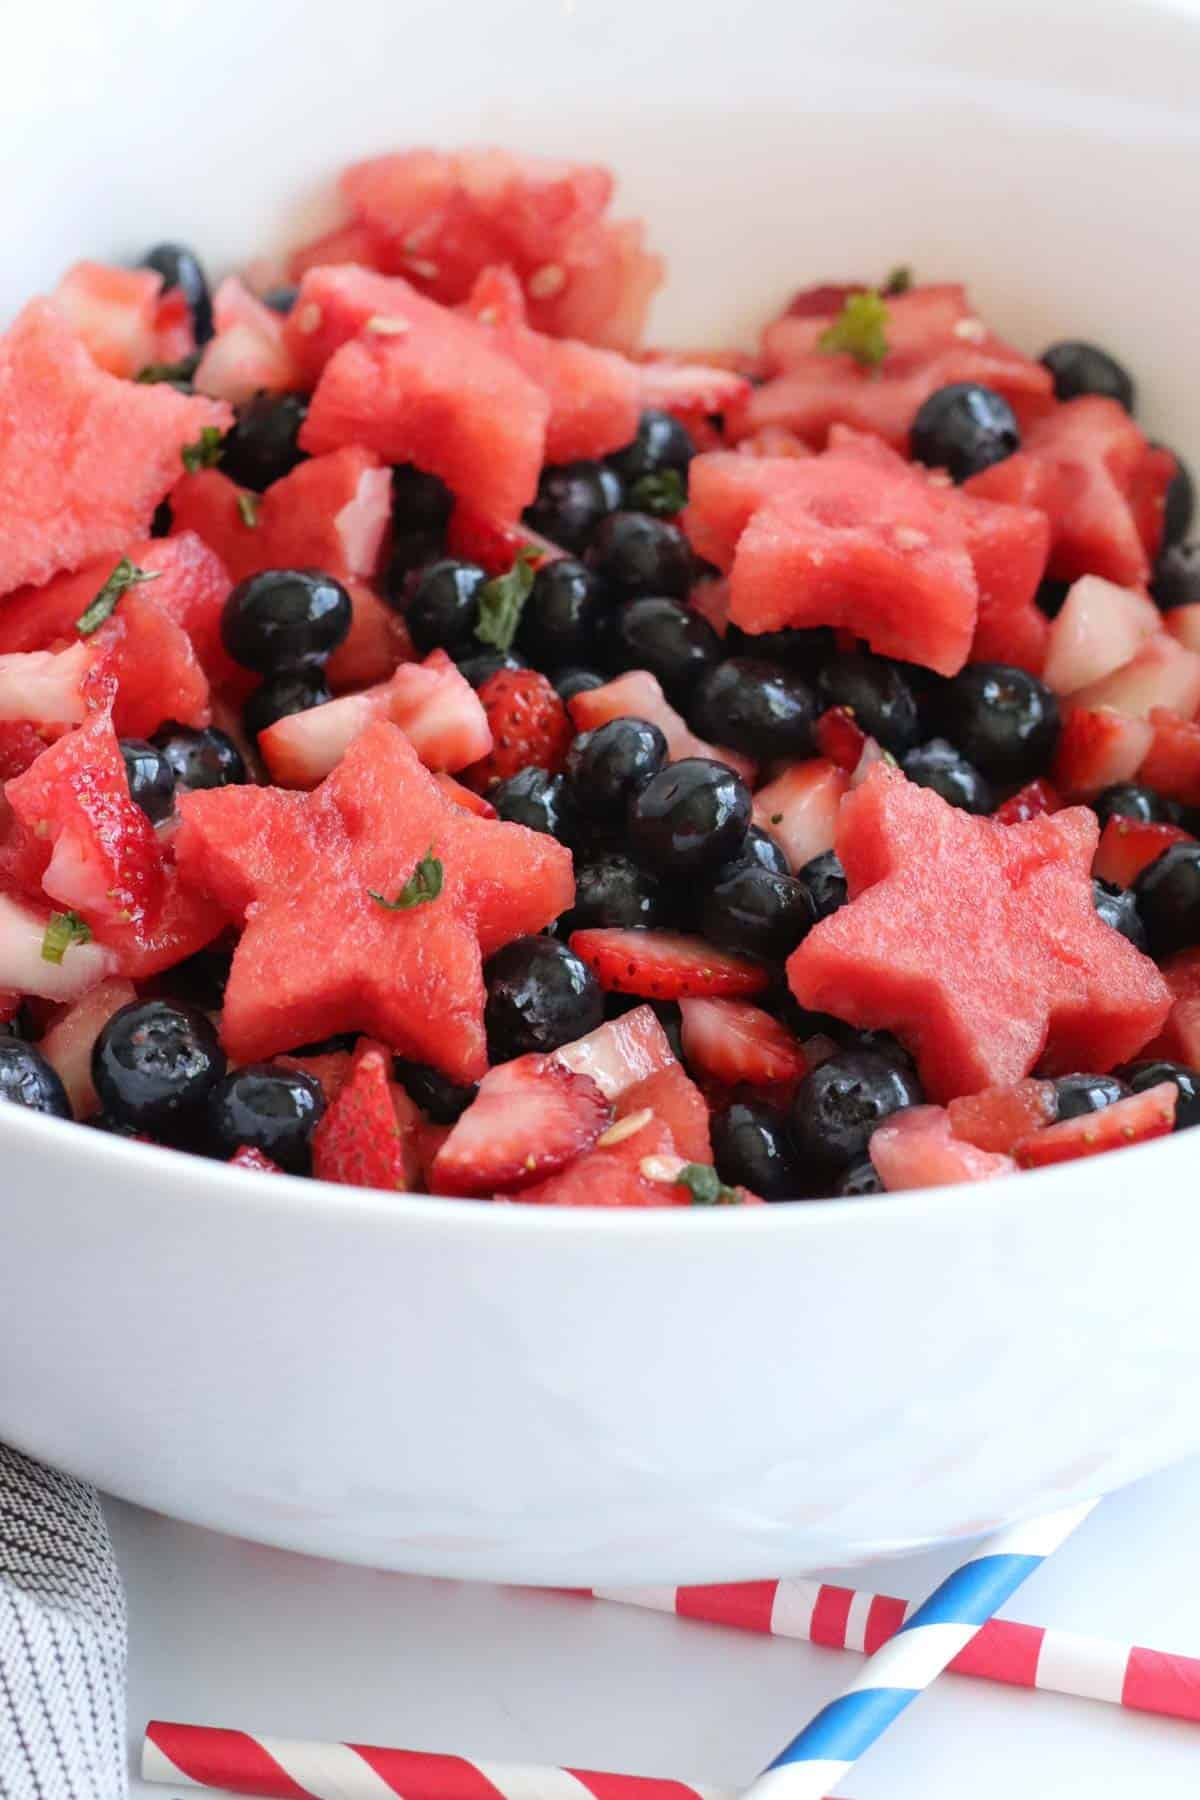 white bowl filled with a red, white, and blue berry fruit salad with strawberries, blueberries, and watermelon cut into star shapes